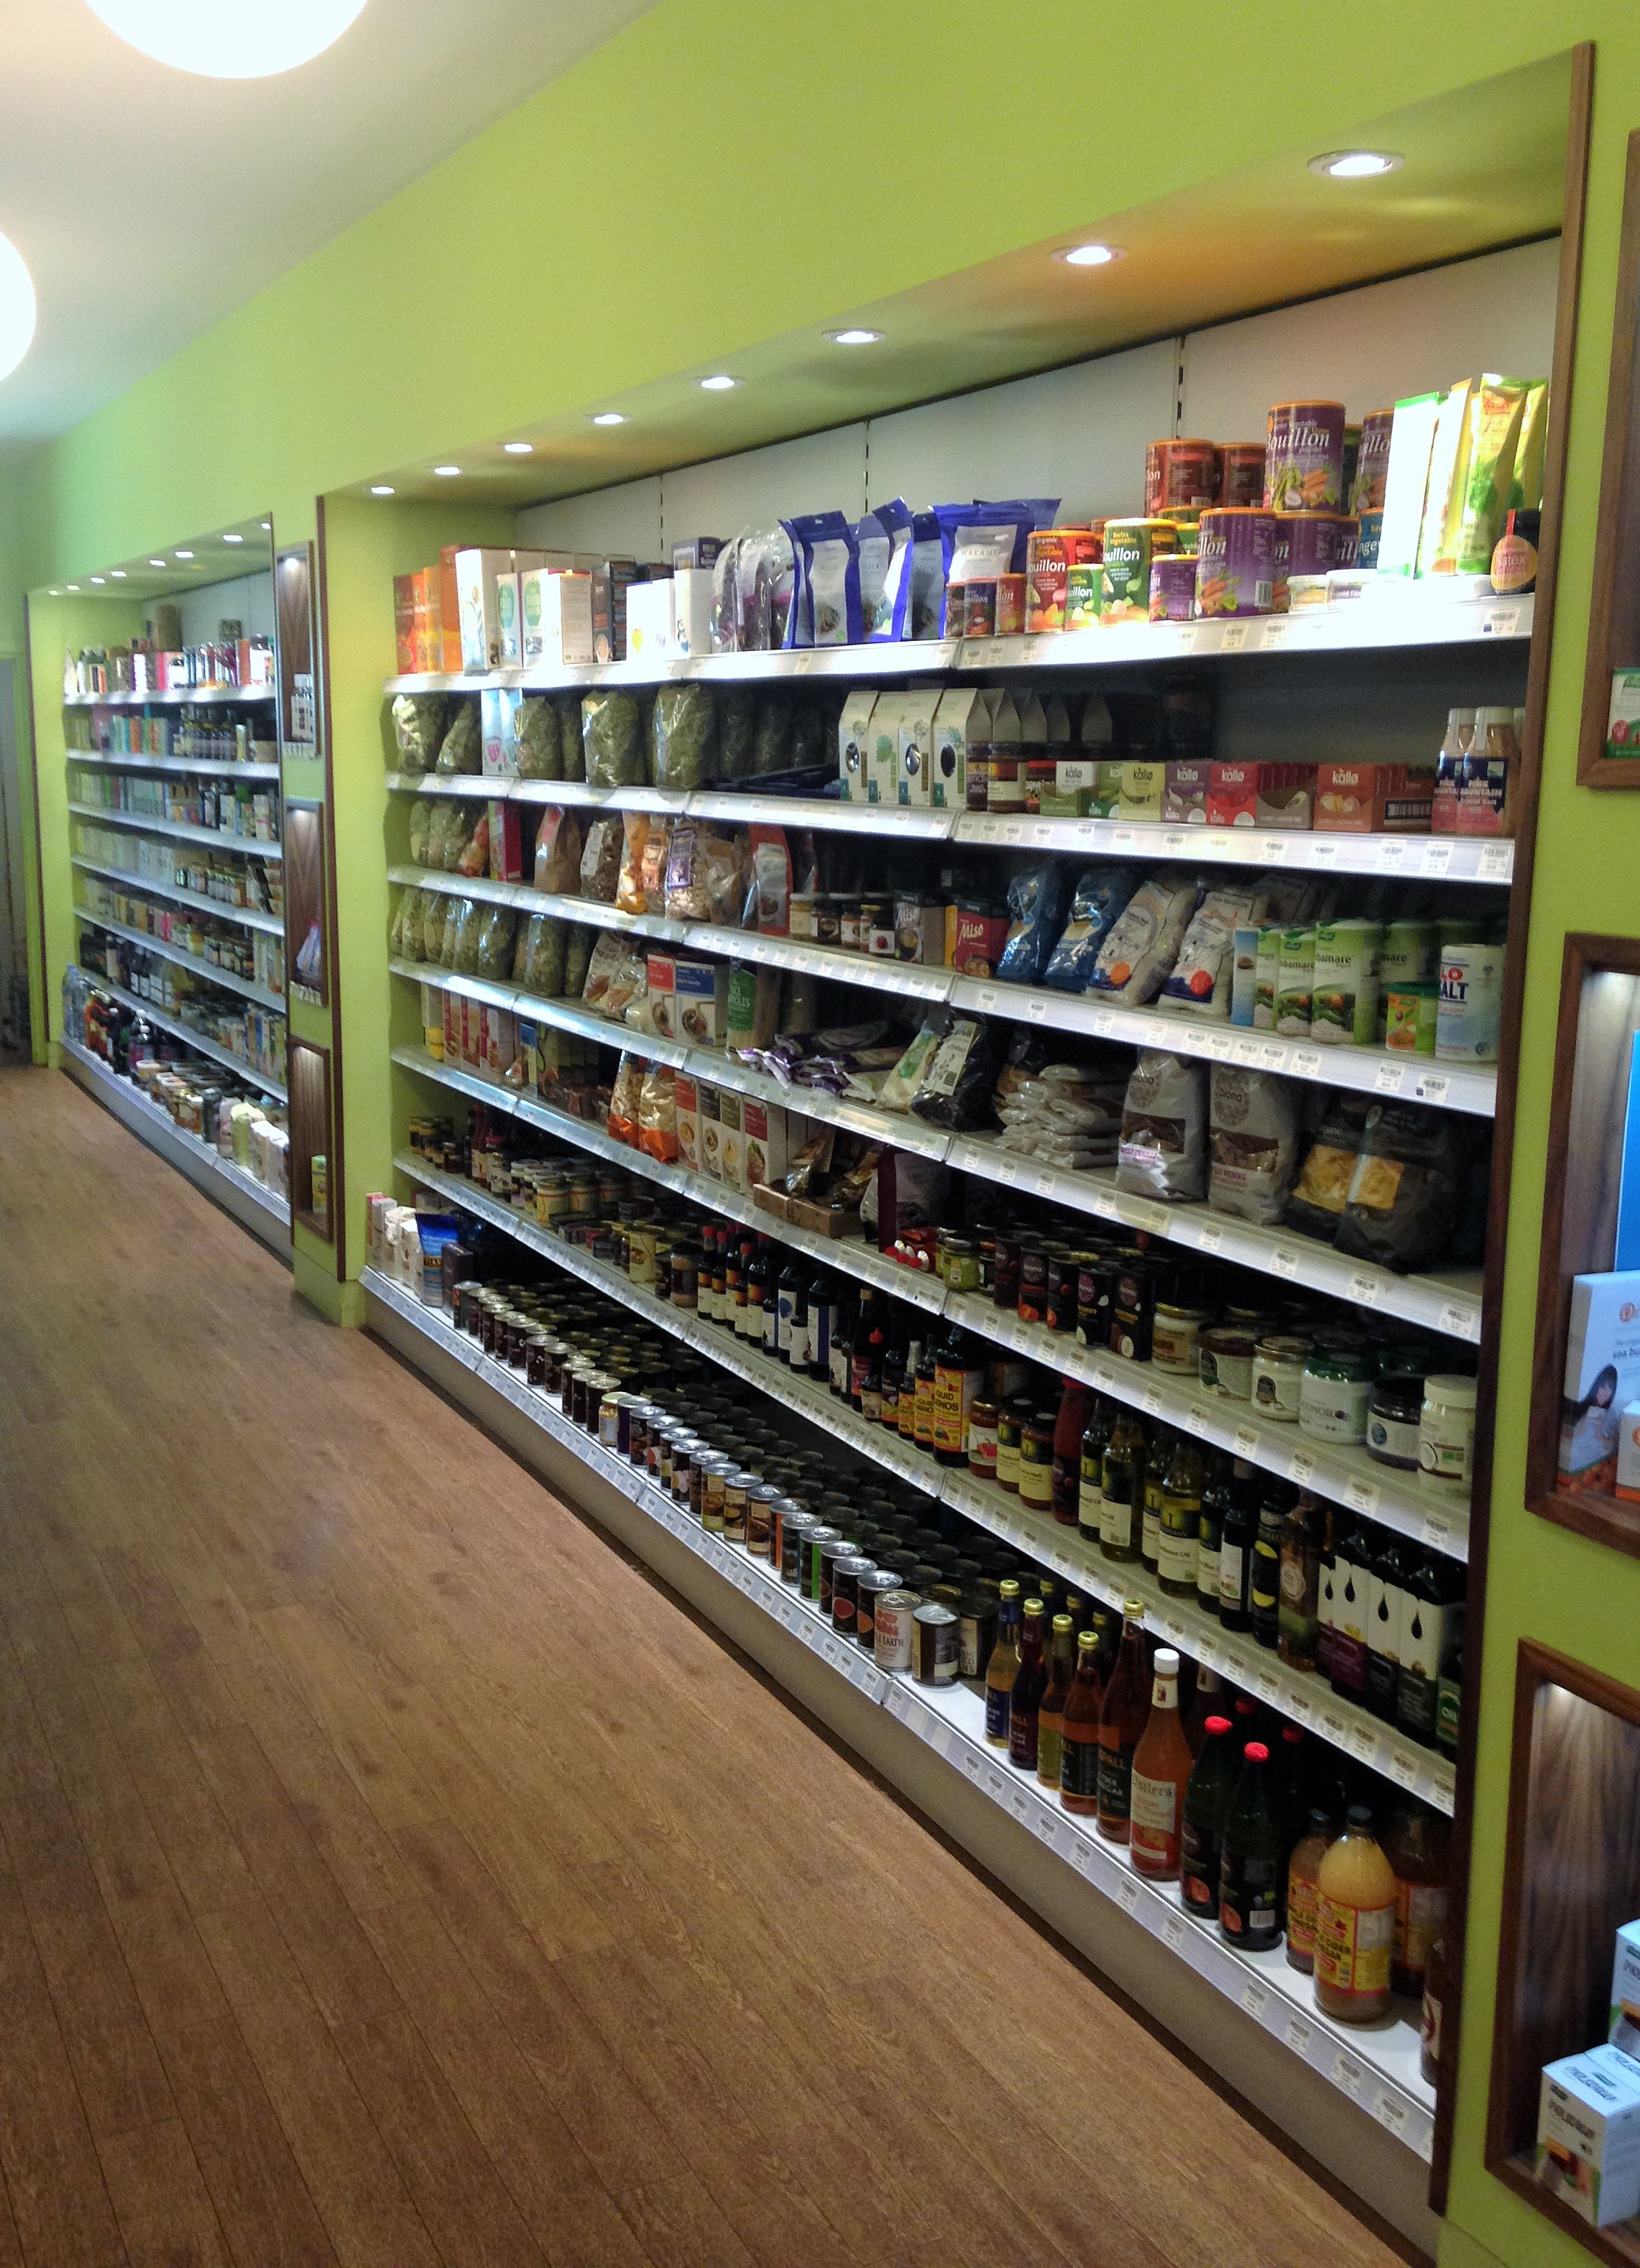 G Baldwin & Co health foods shelving - kenningtonrunoff.com